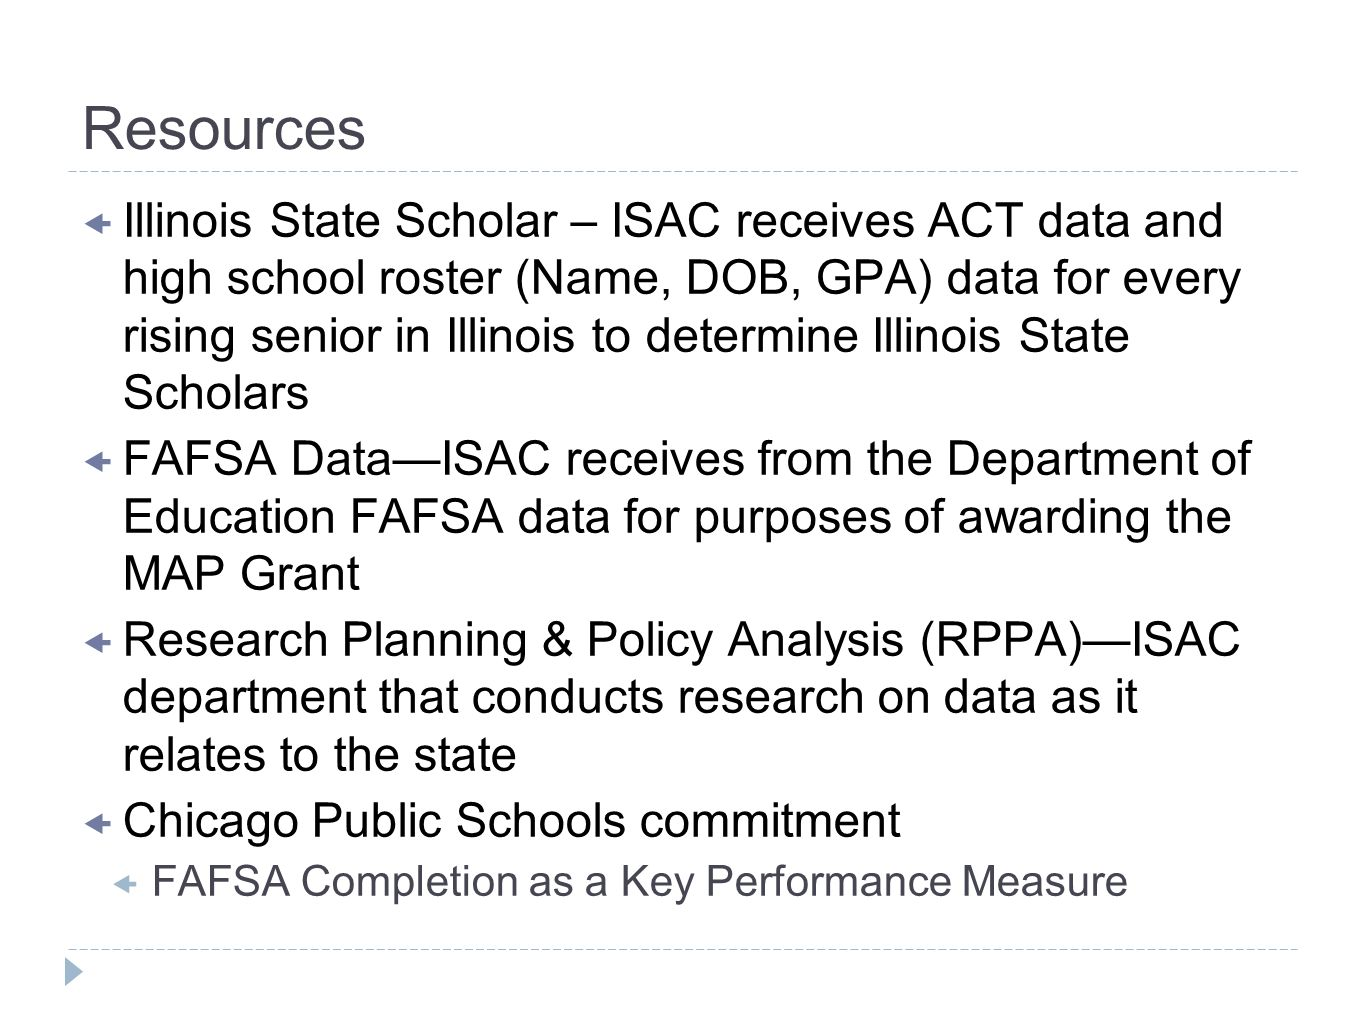 Resources Illinois State Scholar – ISAC receives ACT data and high school roster (Name, DOB, GPA) data for every rising senior in Illinois to determin